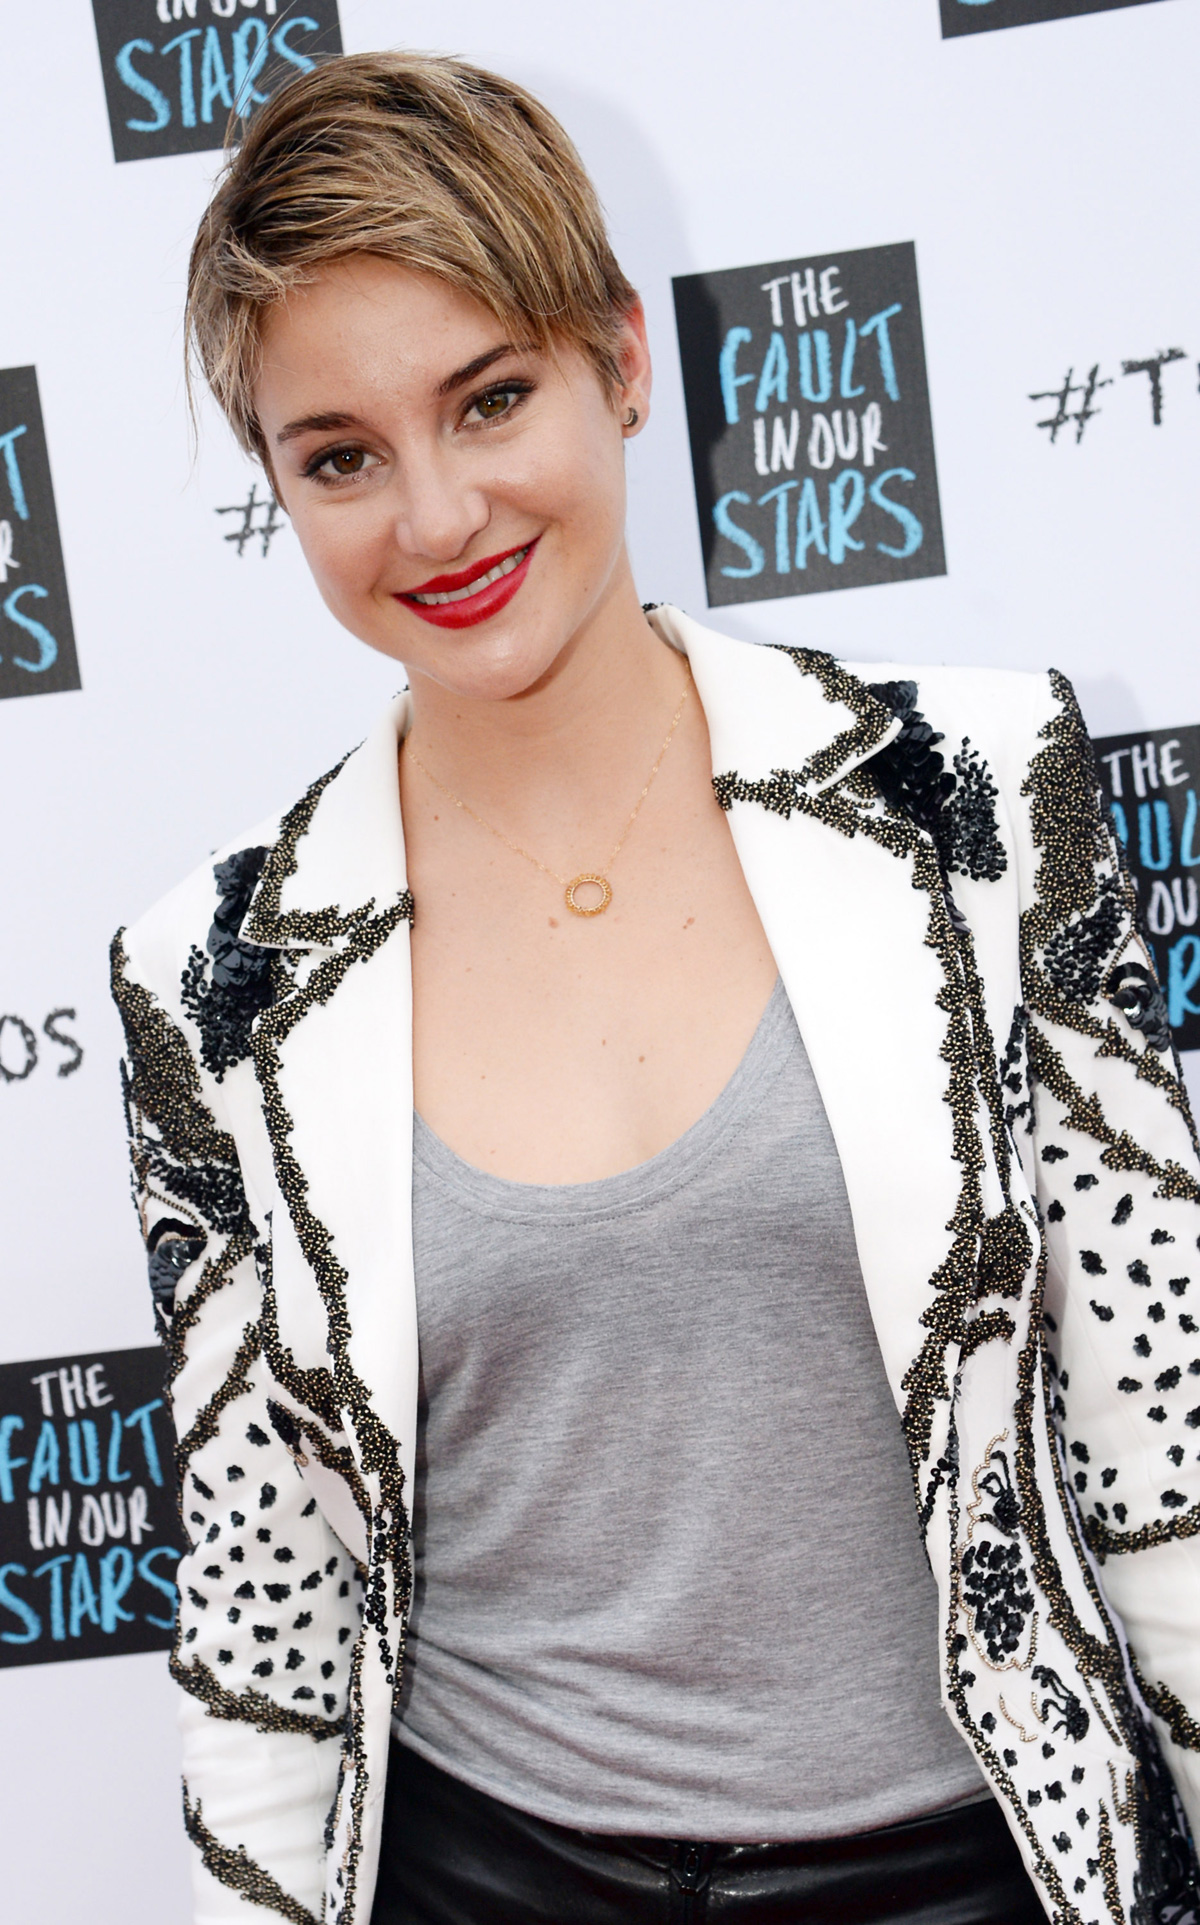 Shailene Woodley's pretty, unique style